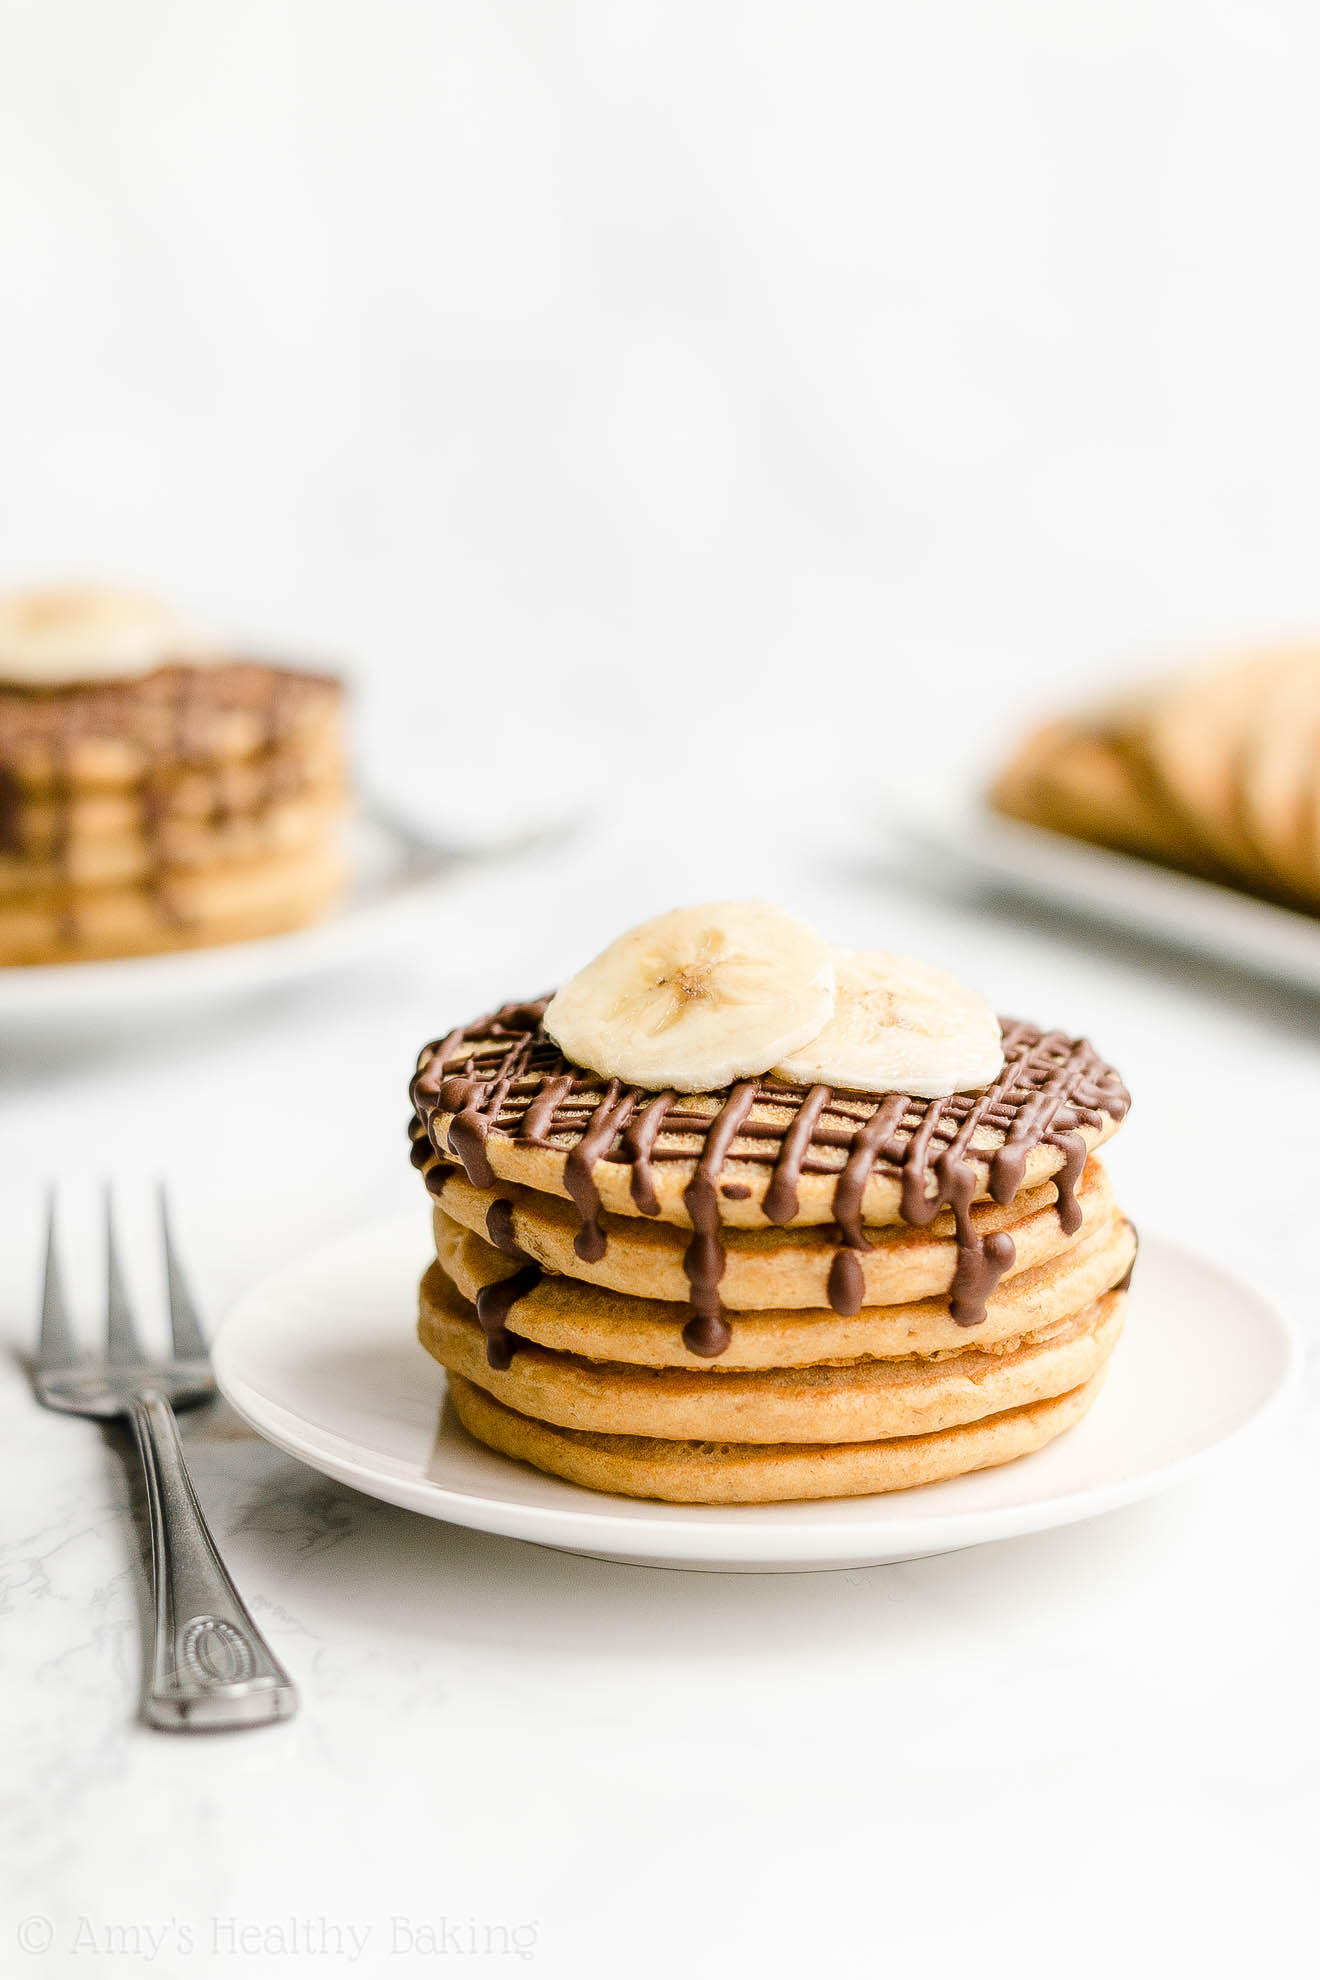 Best Easy Healthy Fluffy Low Calorie Banana Pancakes with Weight Watchers Points